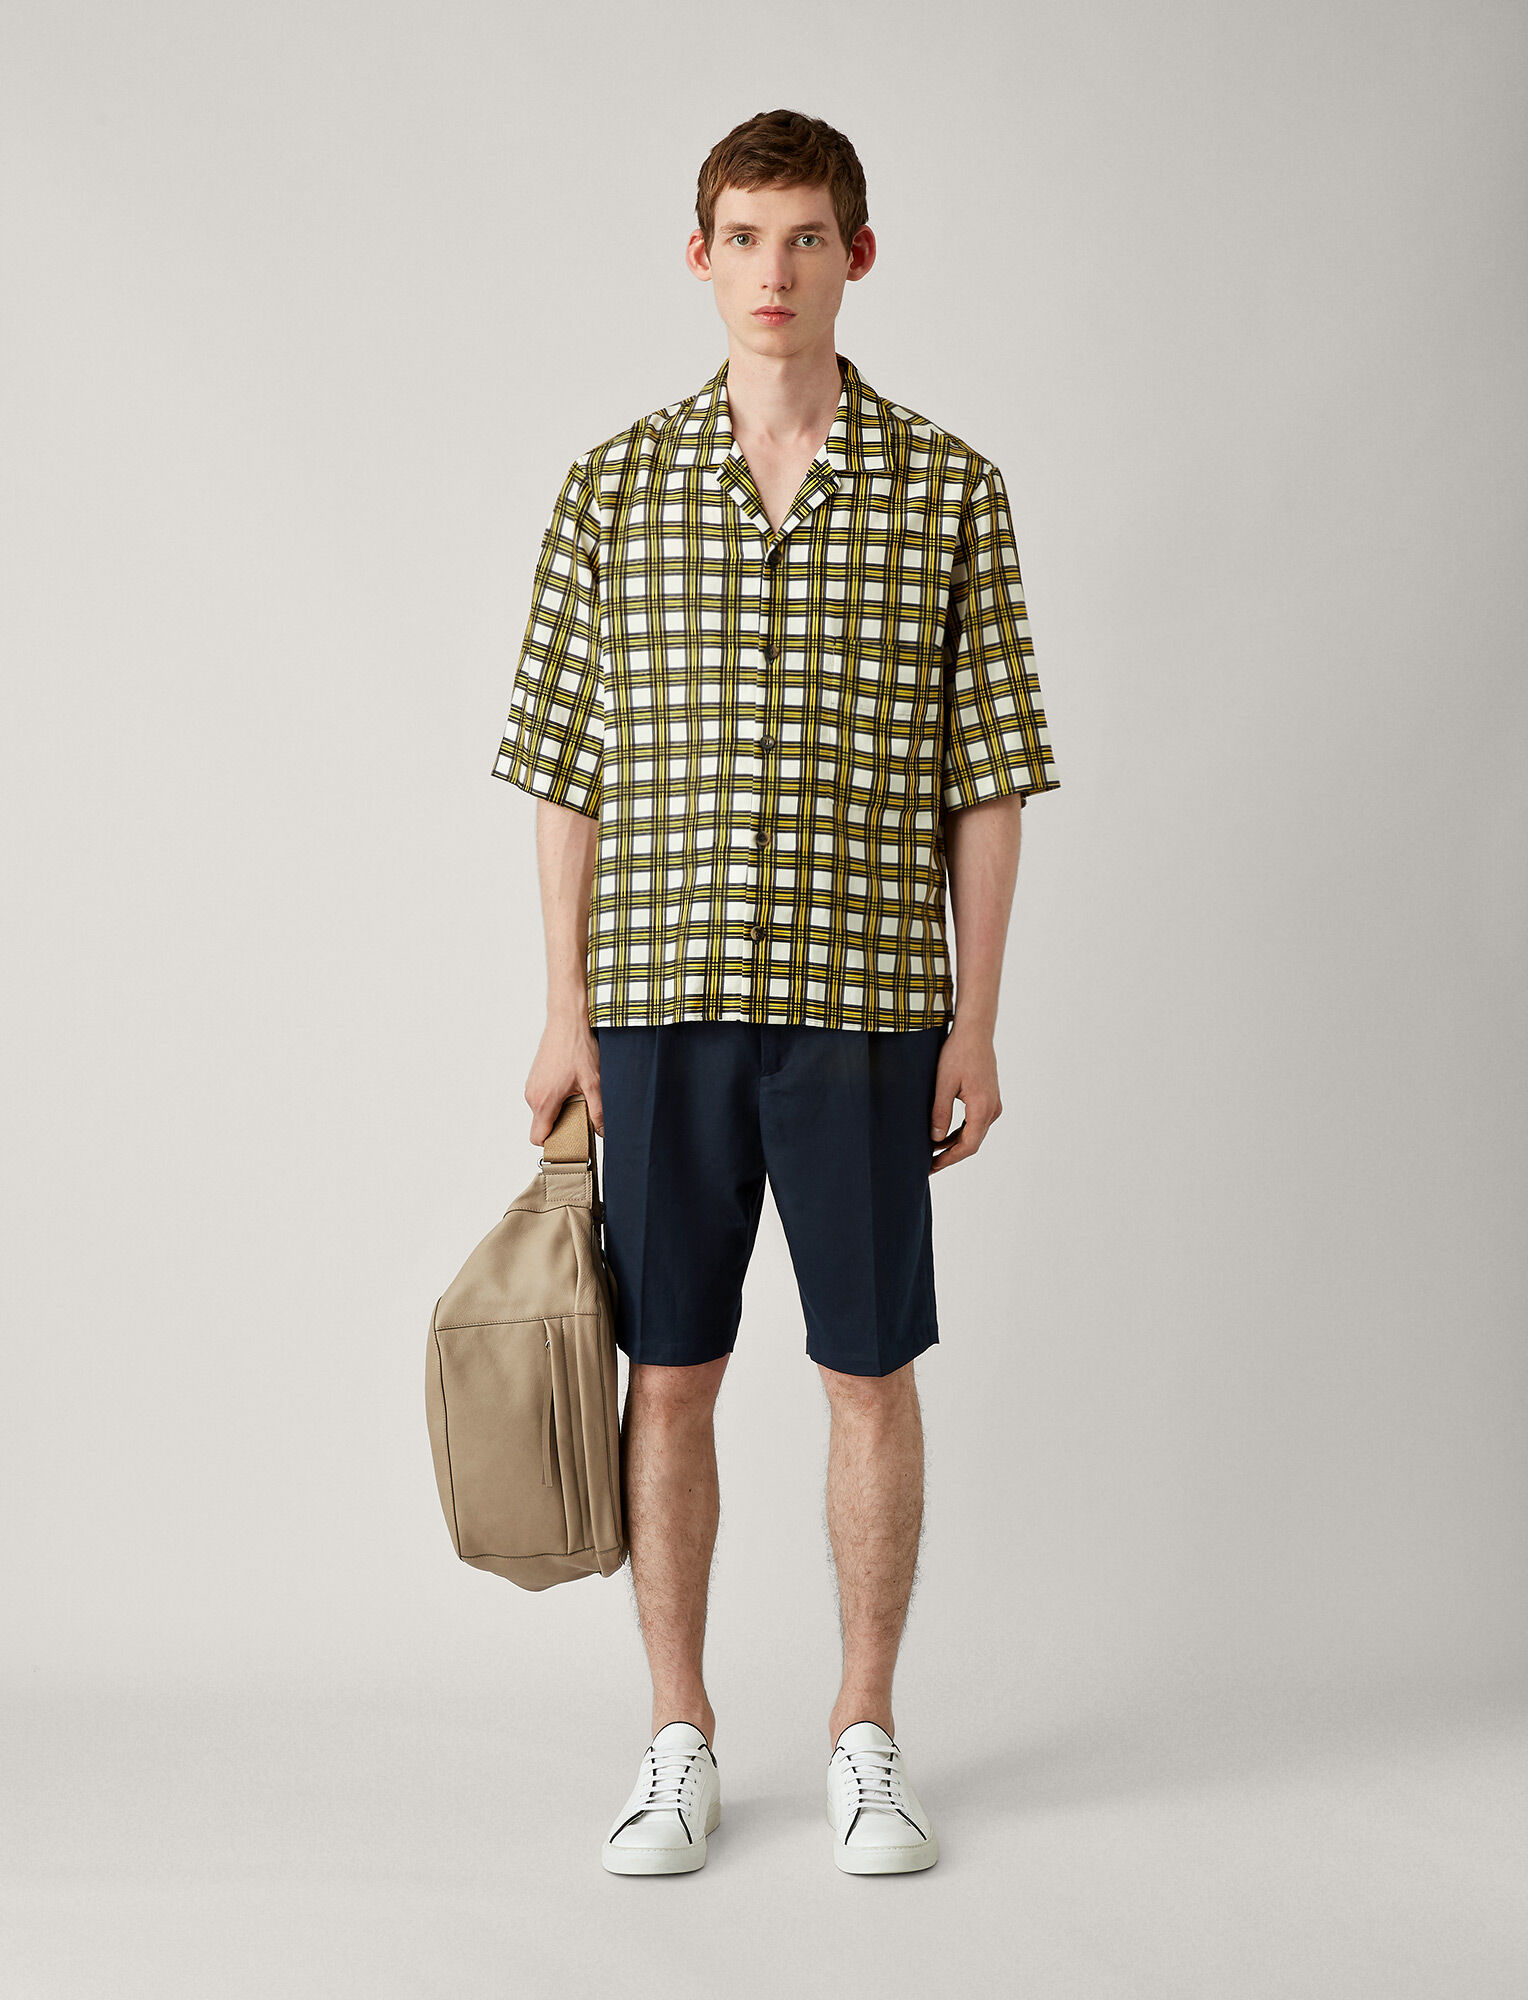 Joseph, Isaac Check Twill Shirt, in MUSTARD